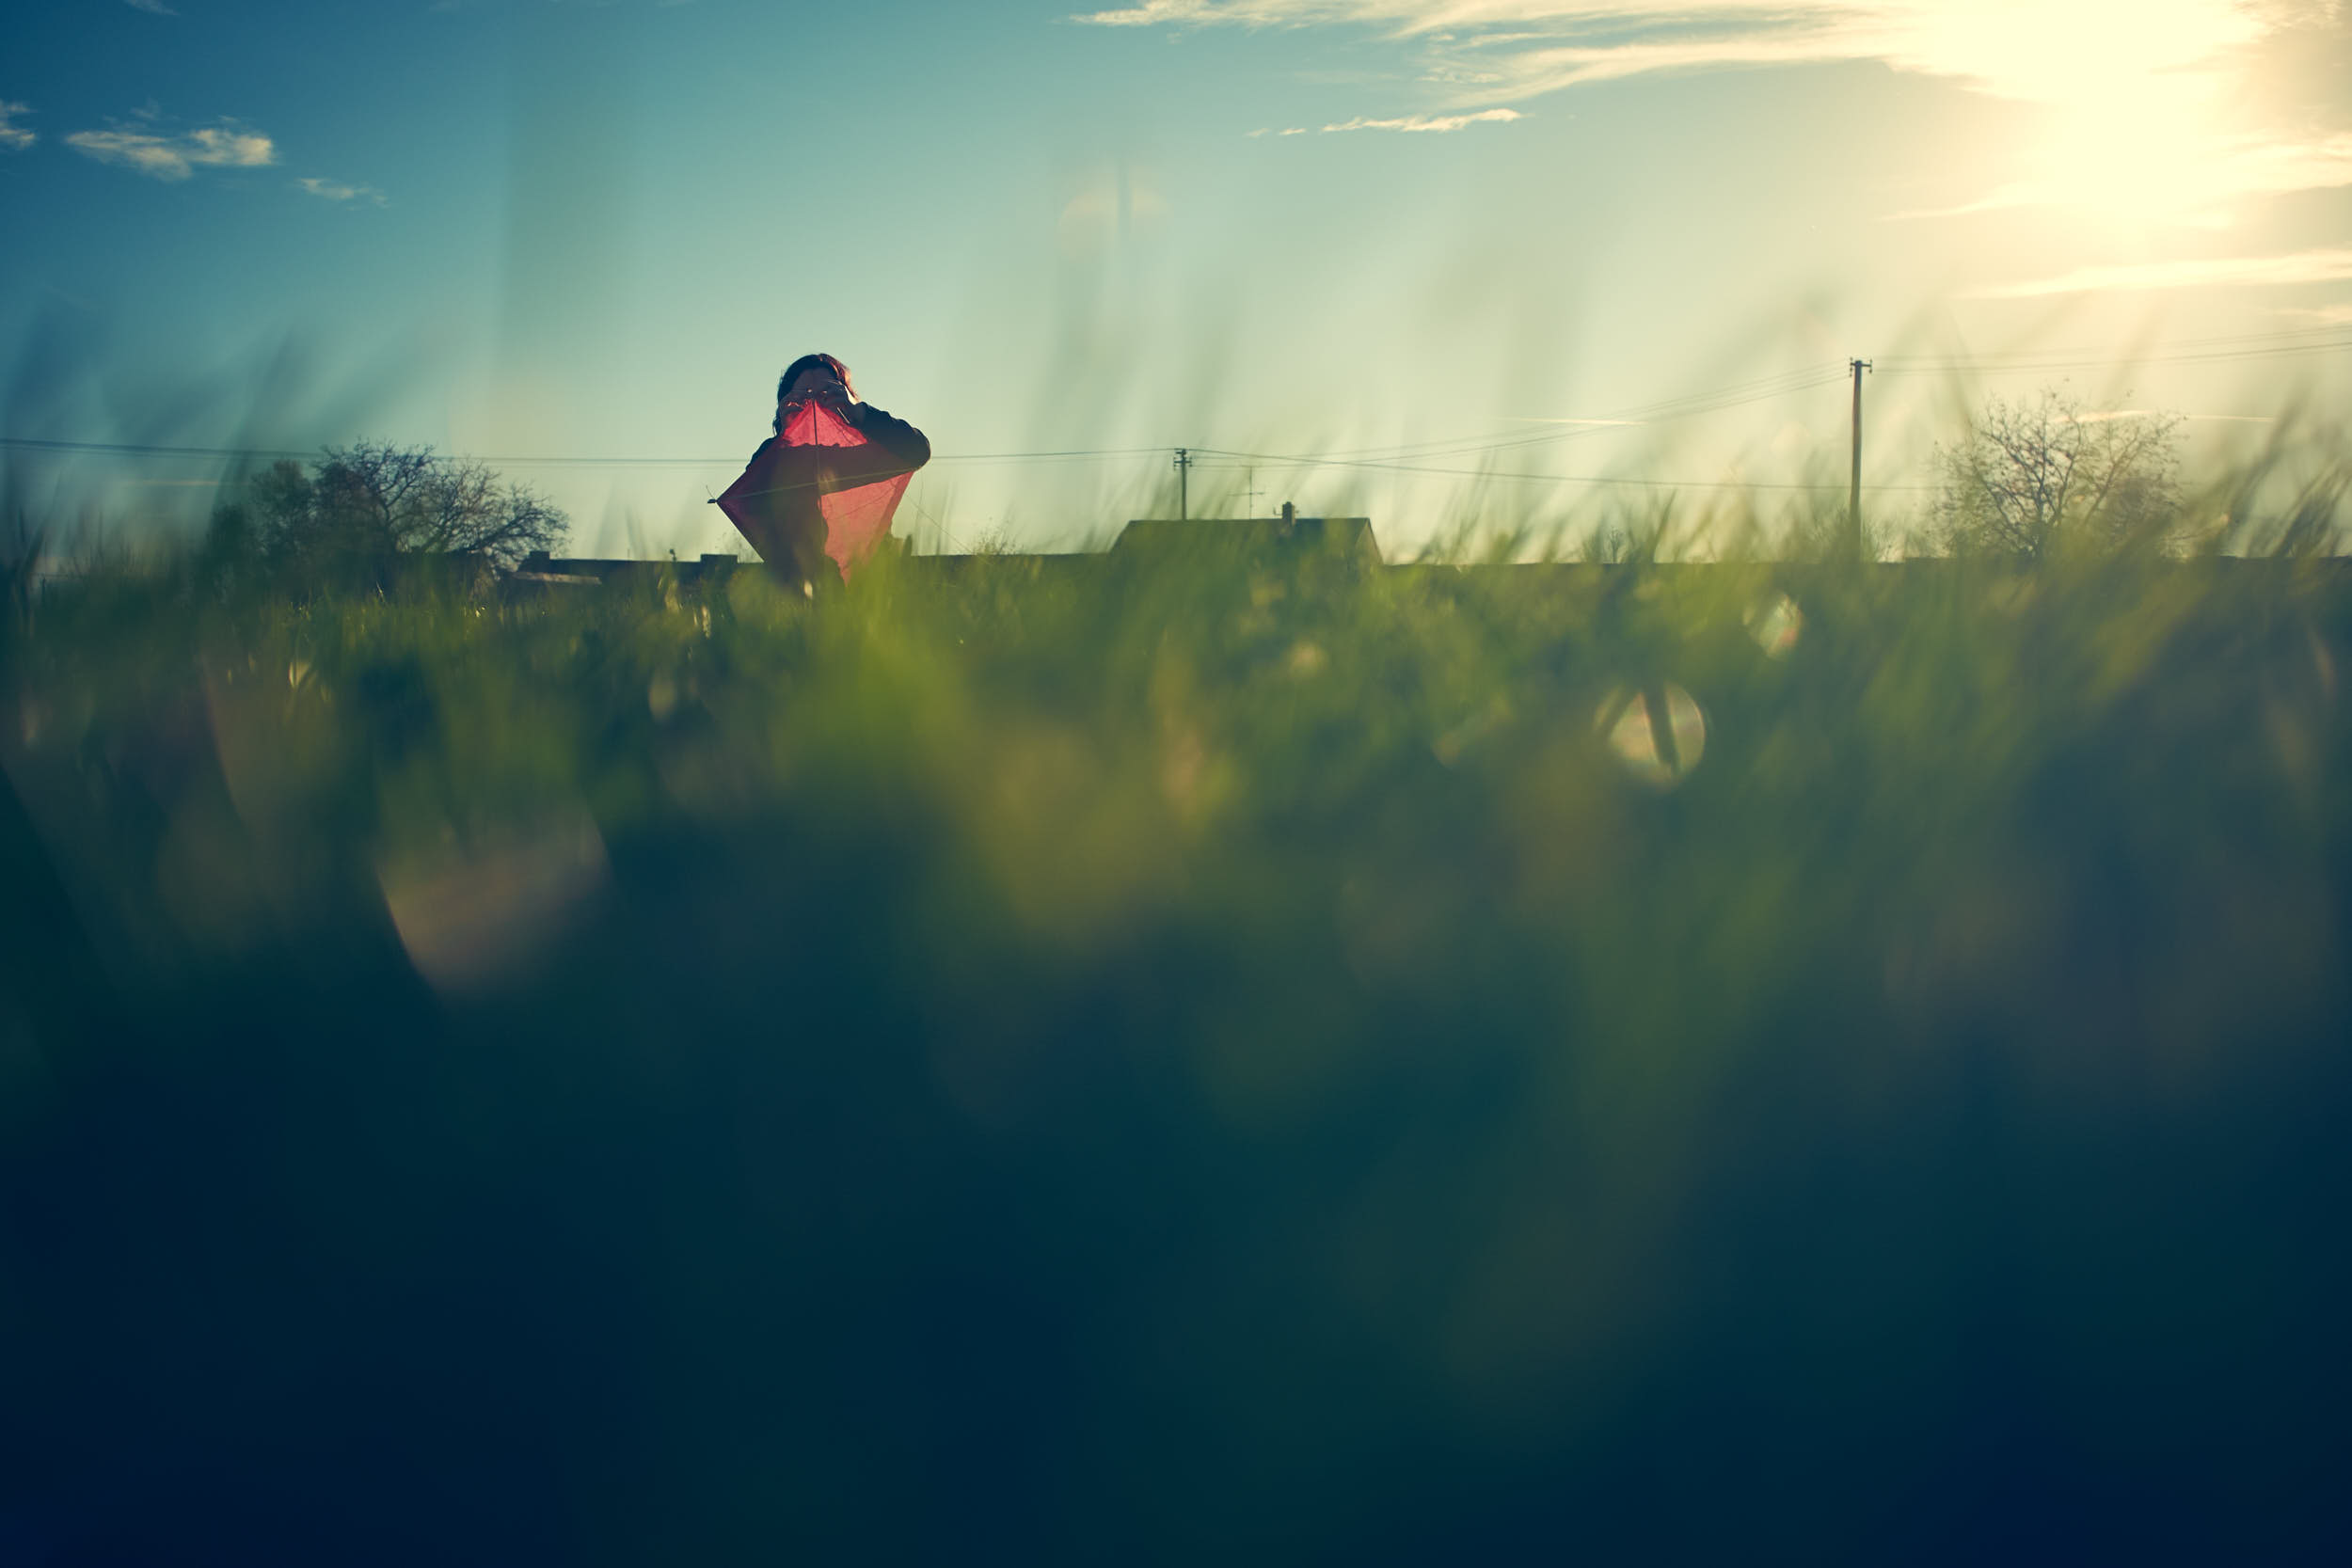 Girl sitting on a meadow is assemling a kite during golden hour.